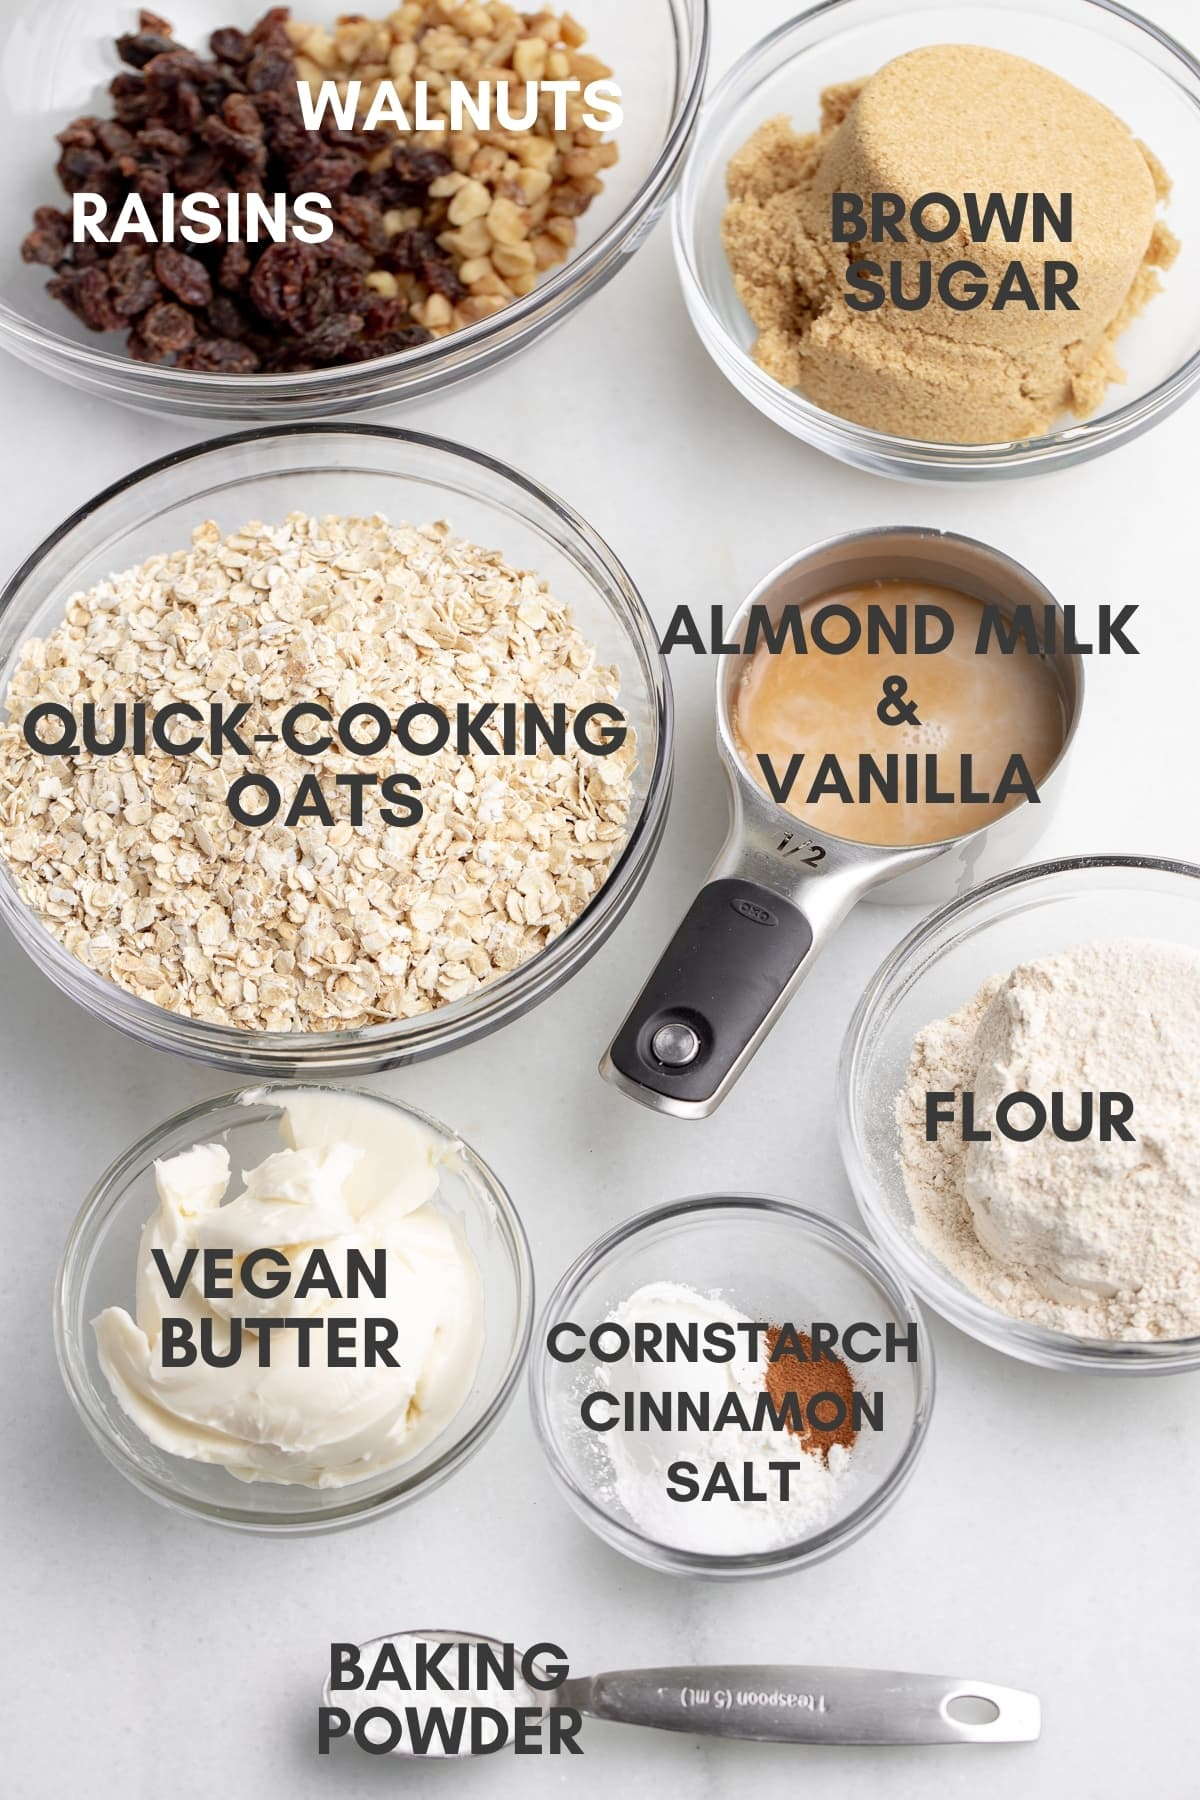 ingredients for vegan oatmeal cookies assembled in small glass bowls and metal measuring spoons with white marble background